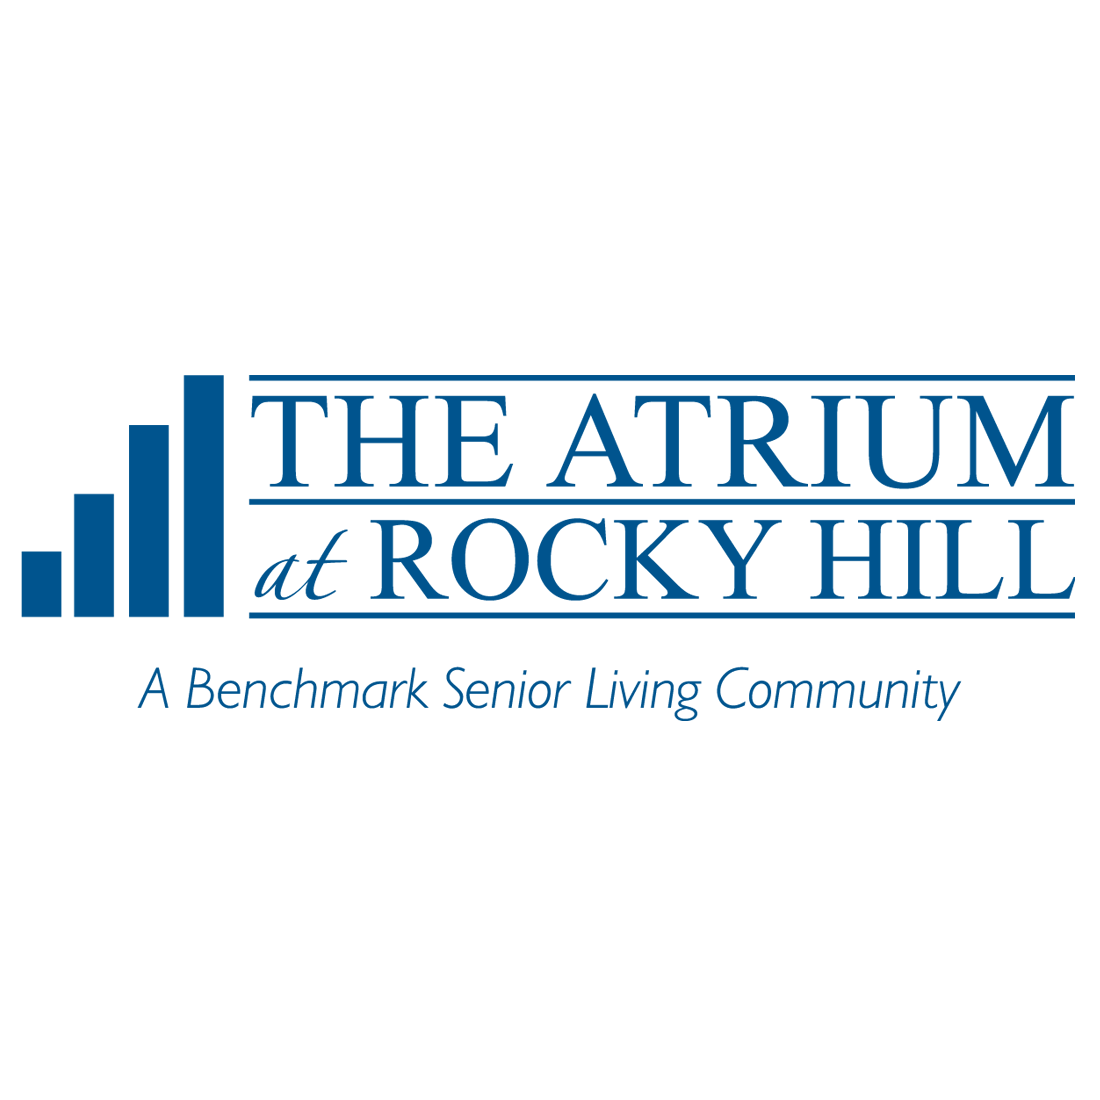 The Atrium at Rocky Hill